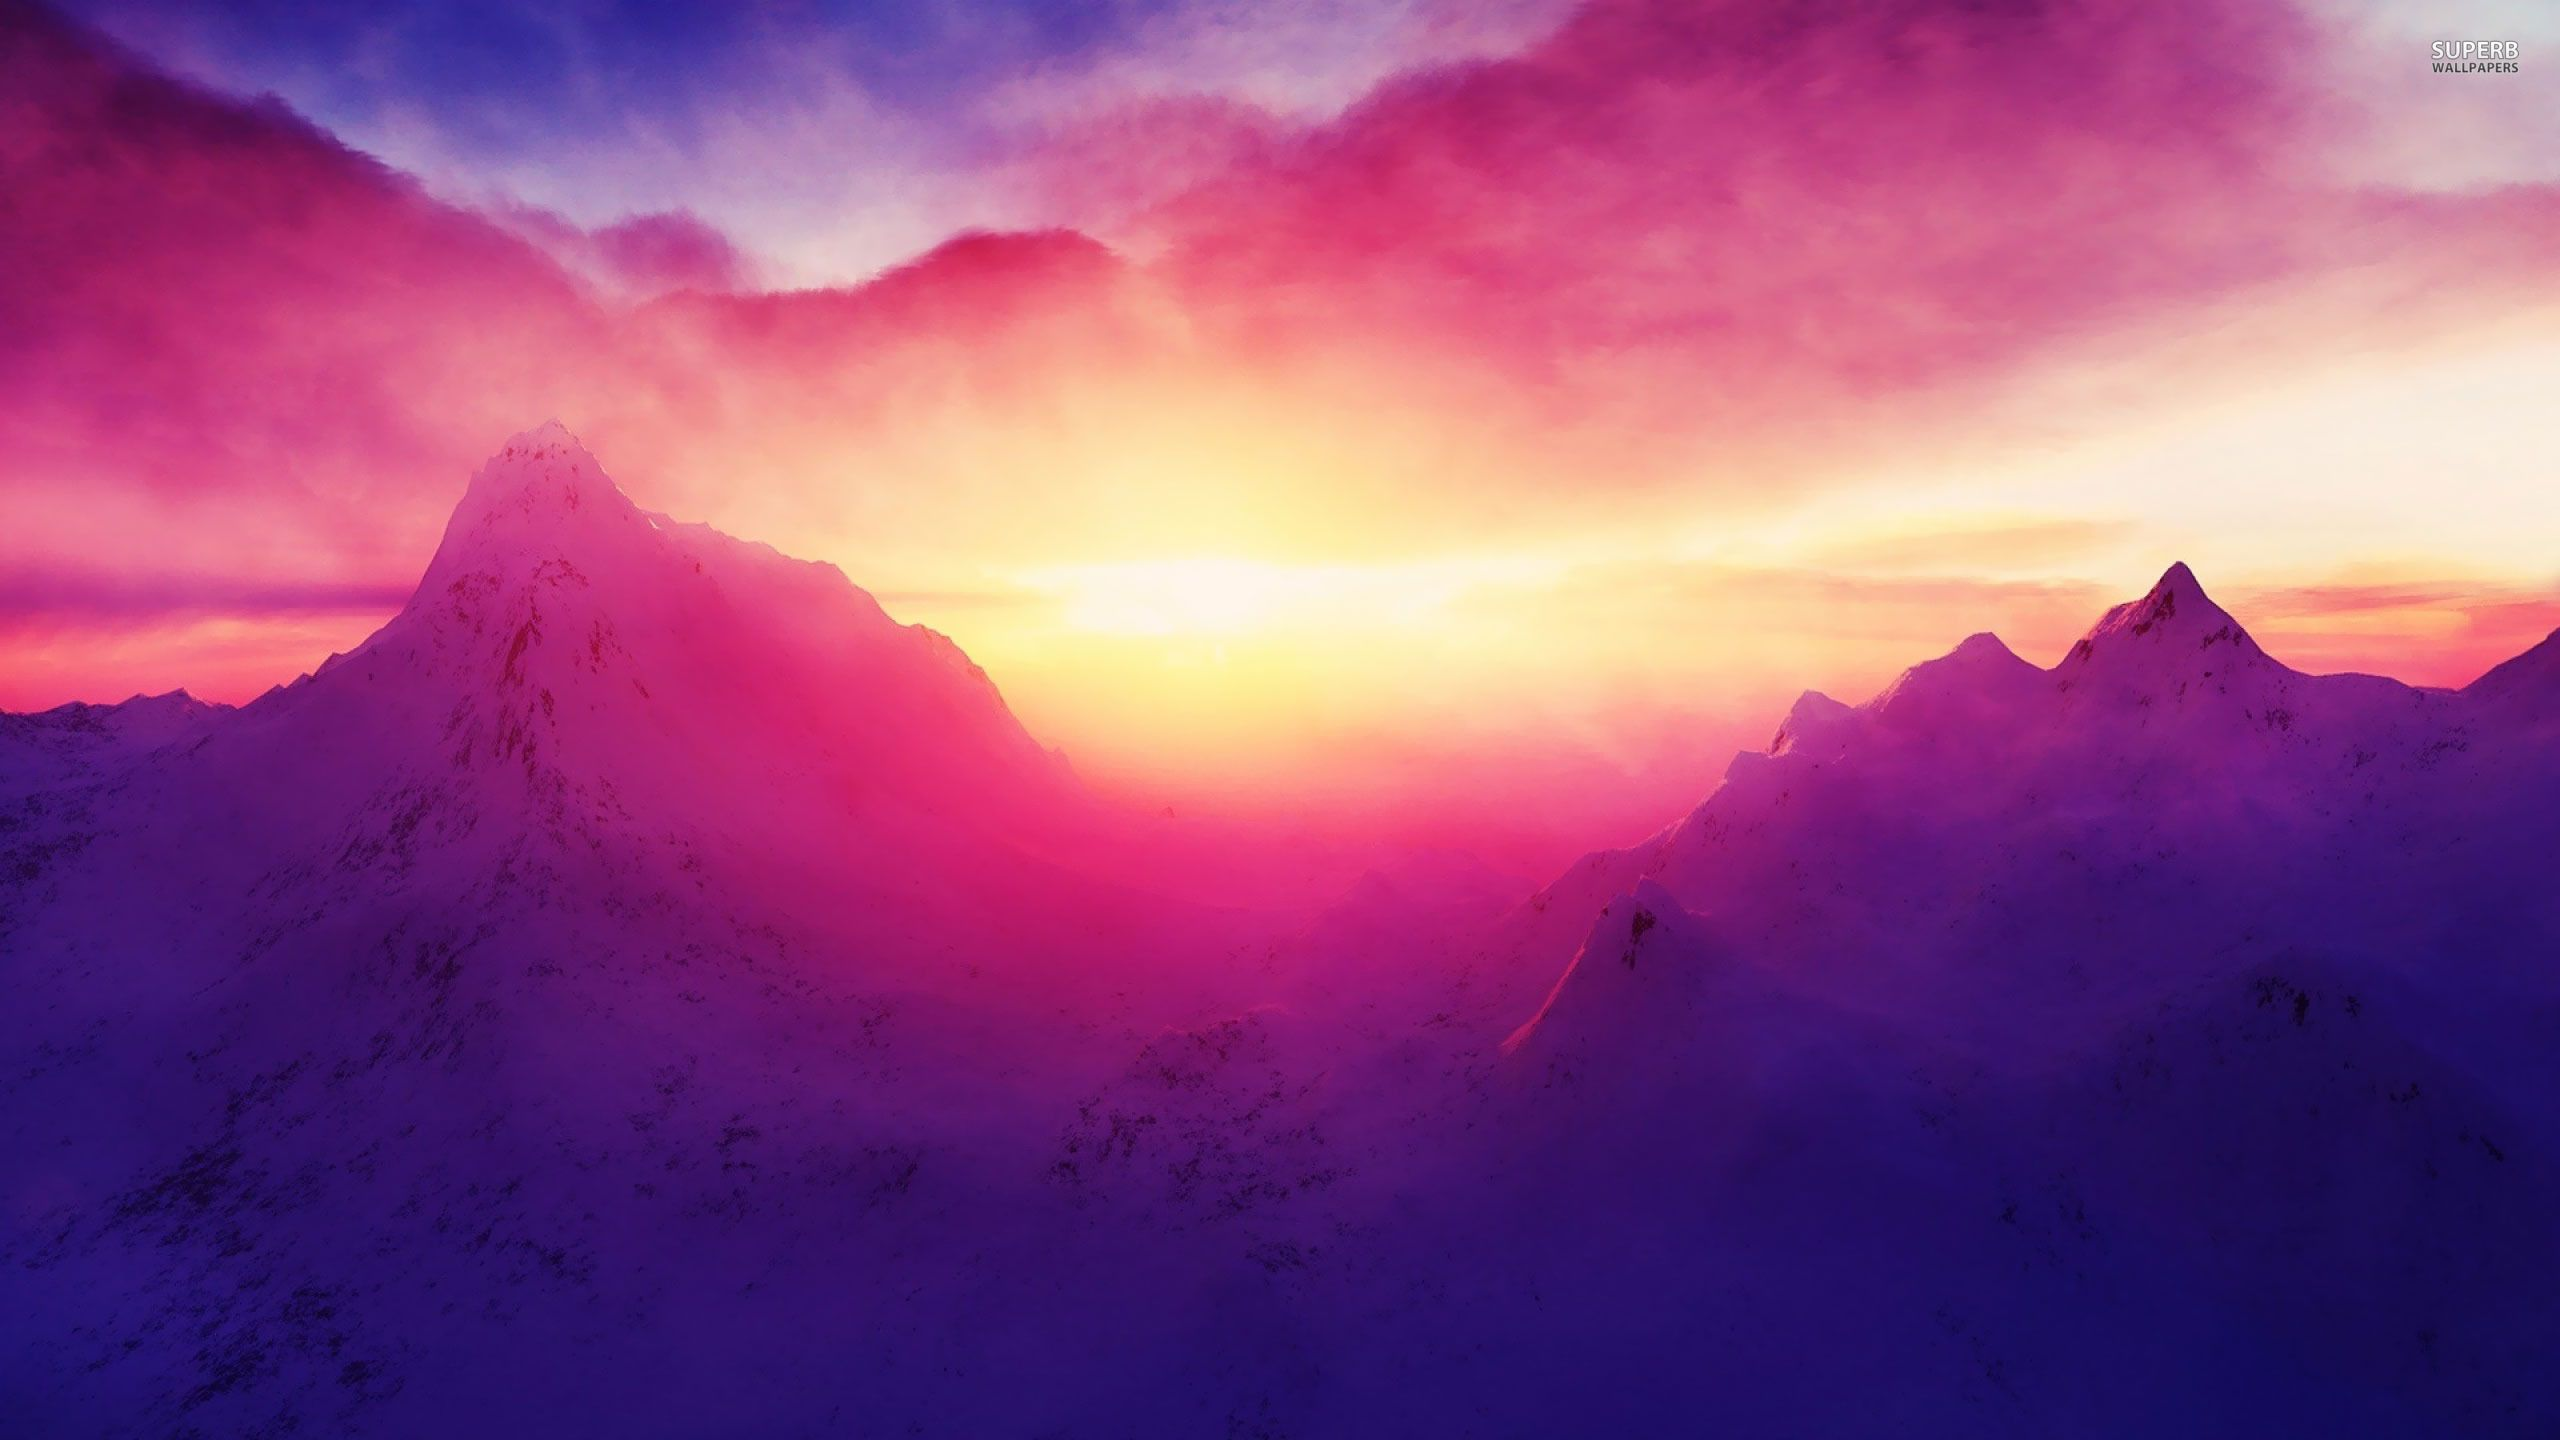 pink snow mountain wallpaper - photo #44